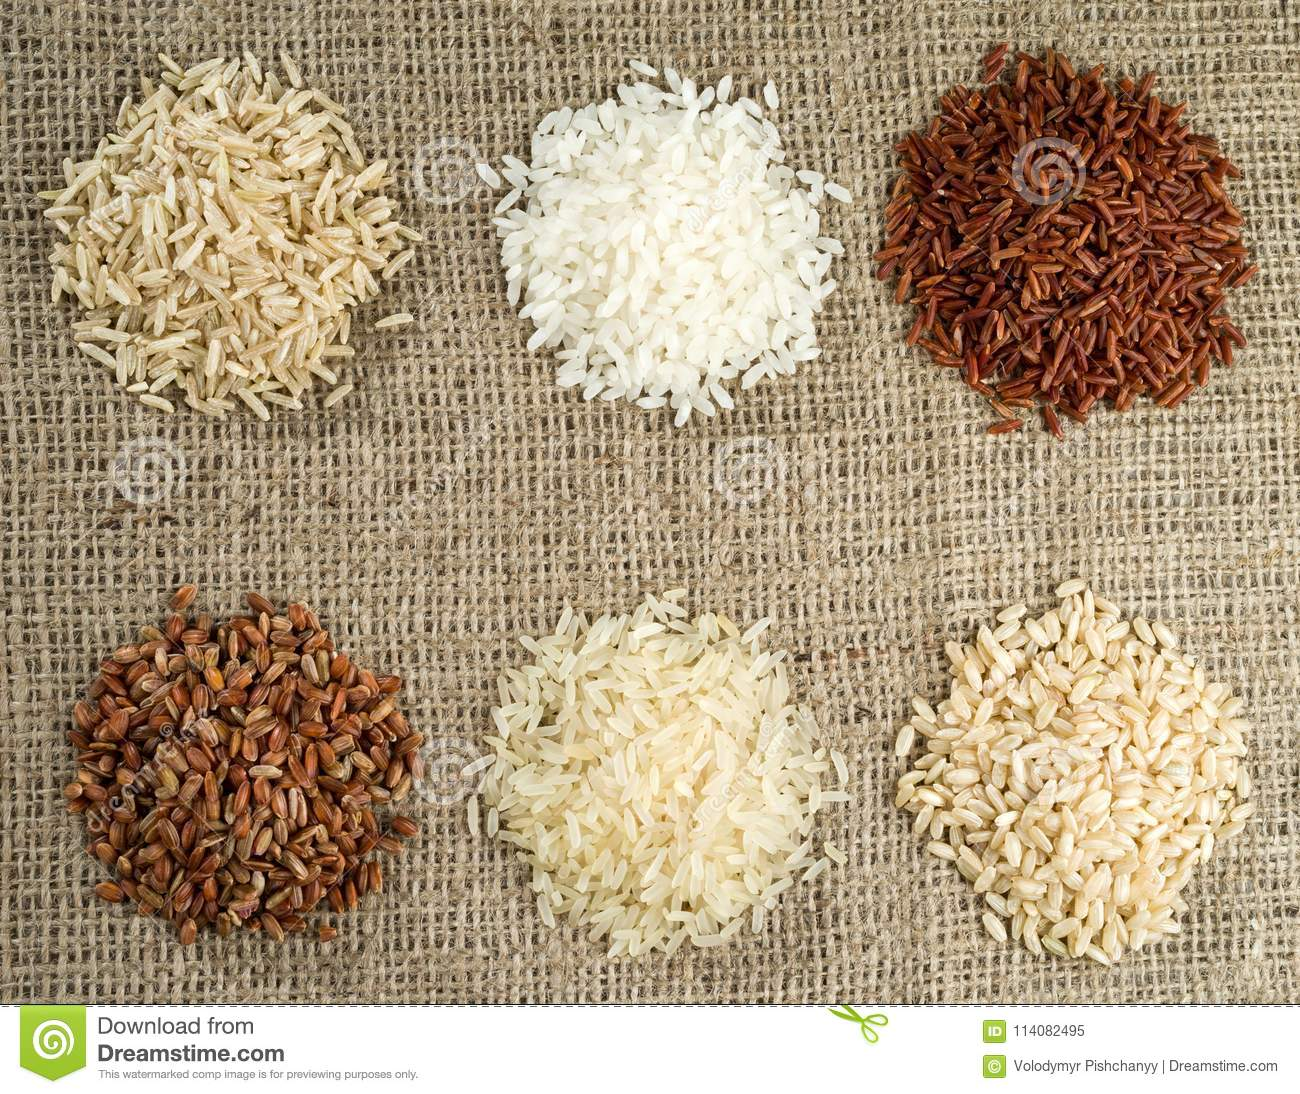 Six heaps of rice of different varieties